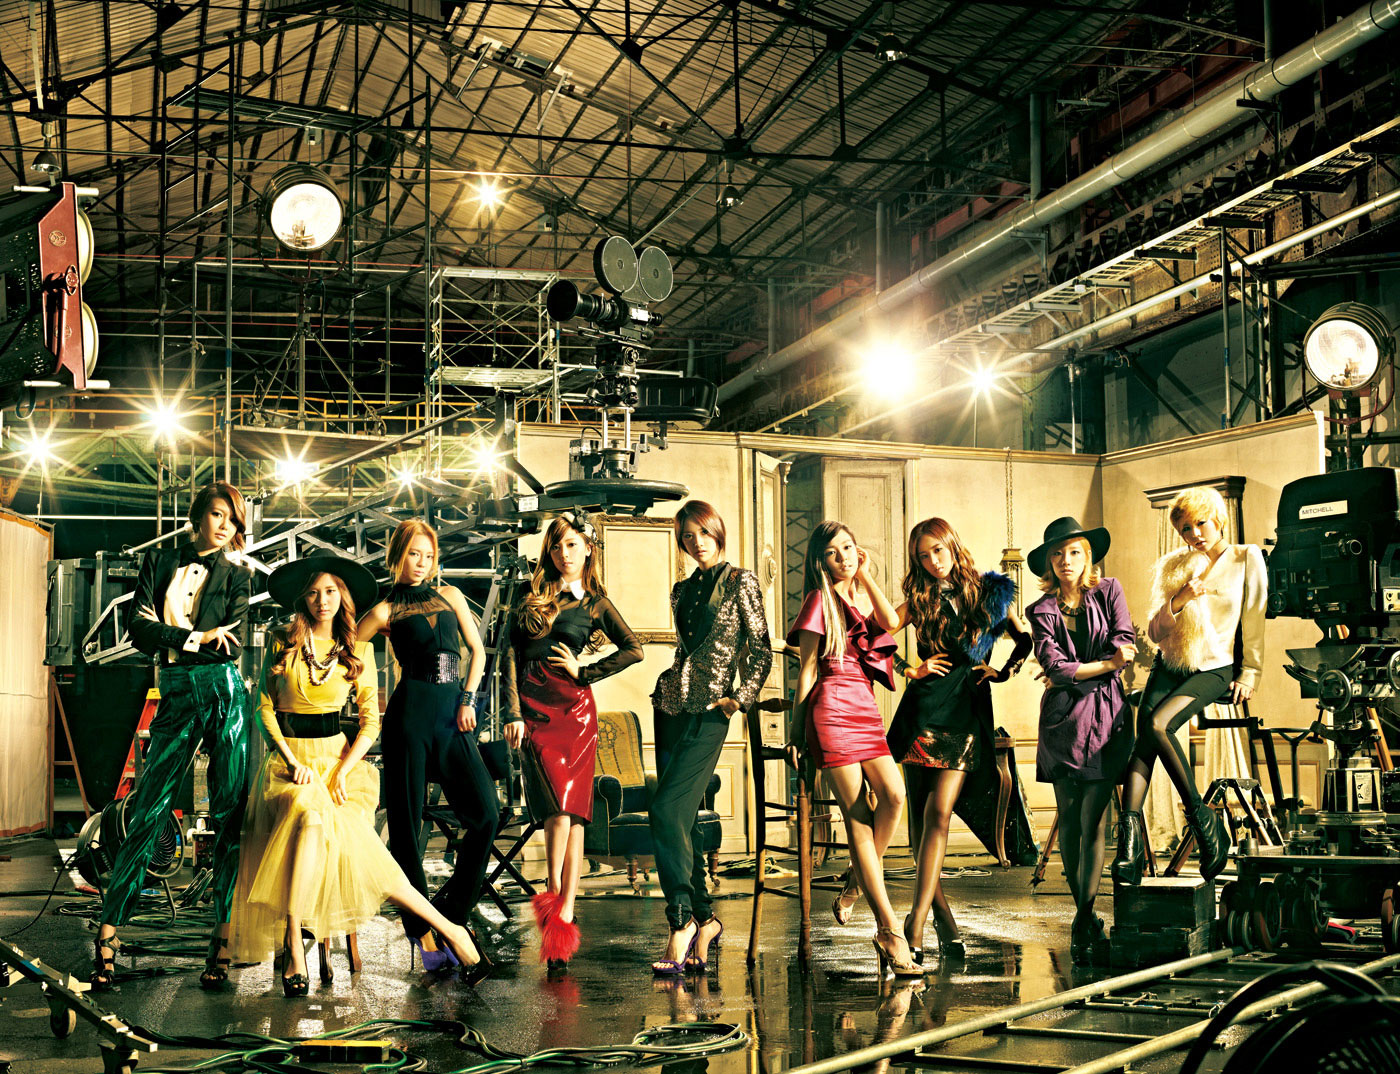 SNSD The Boys Japanese repackaged album